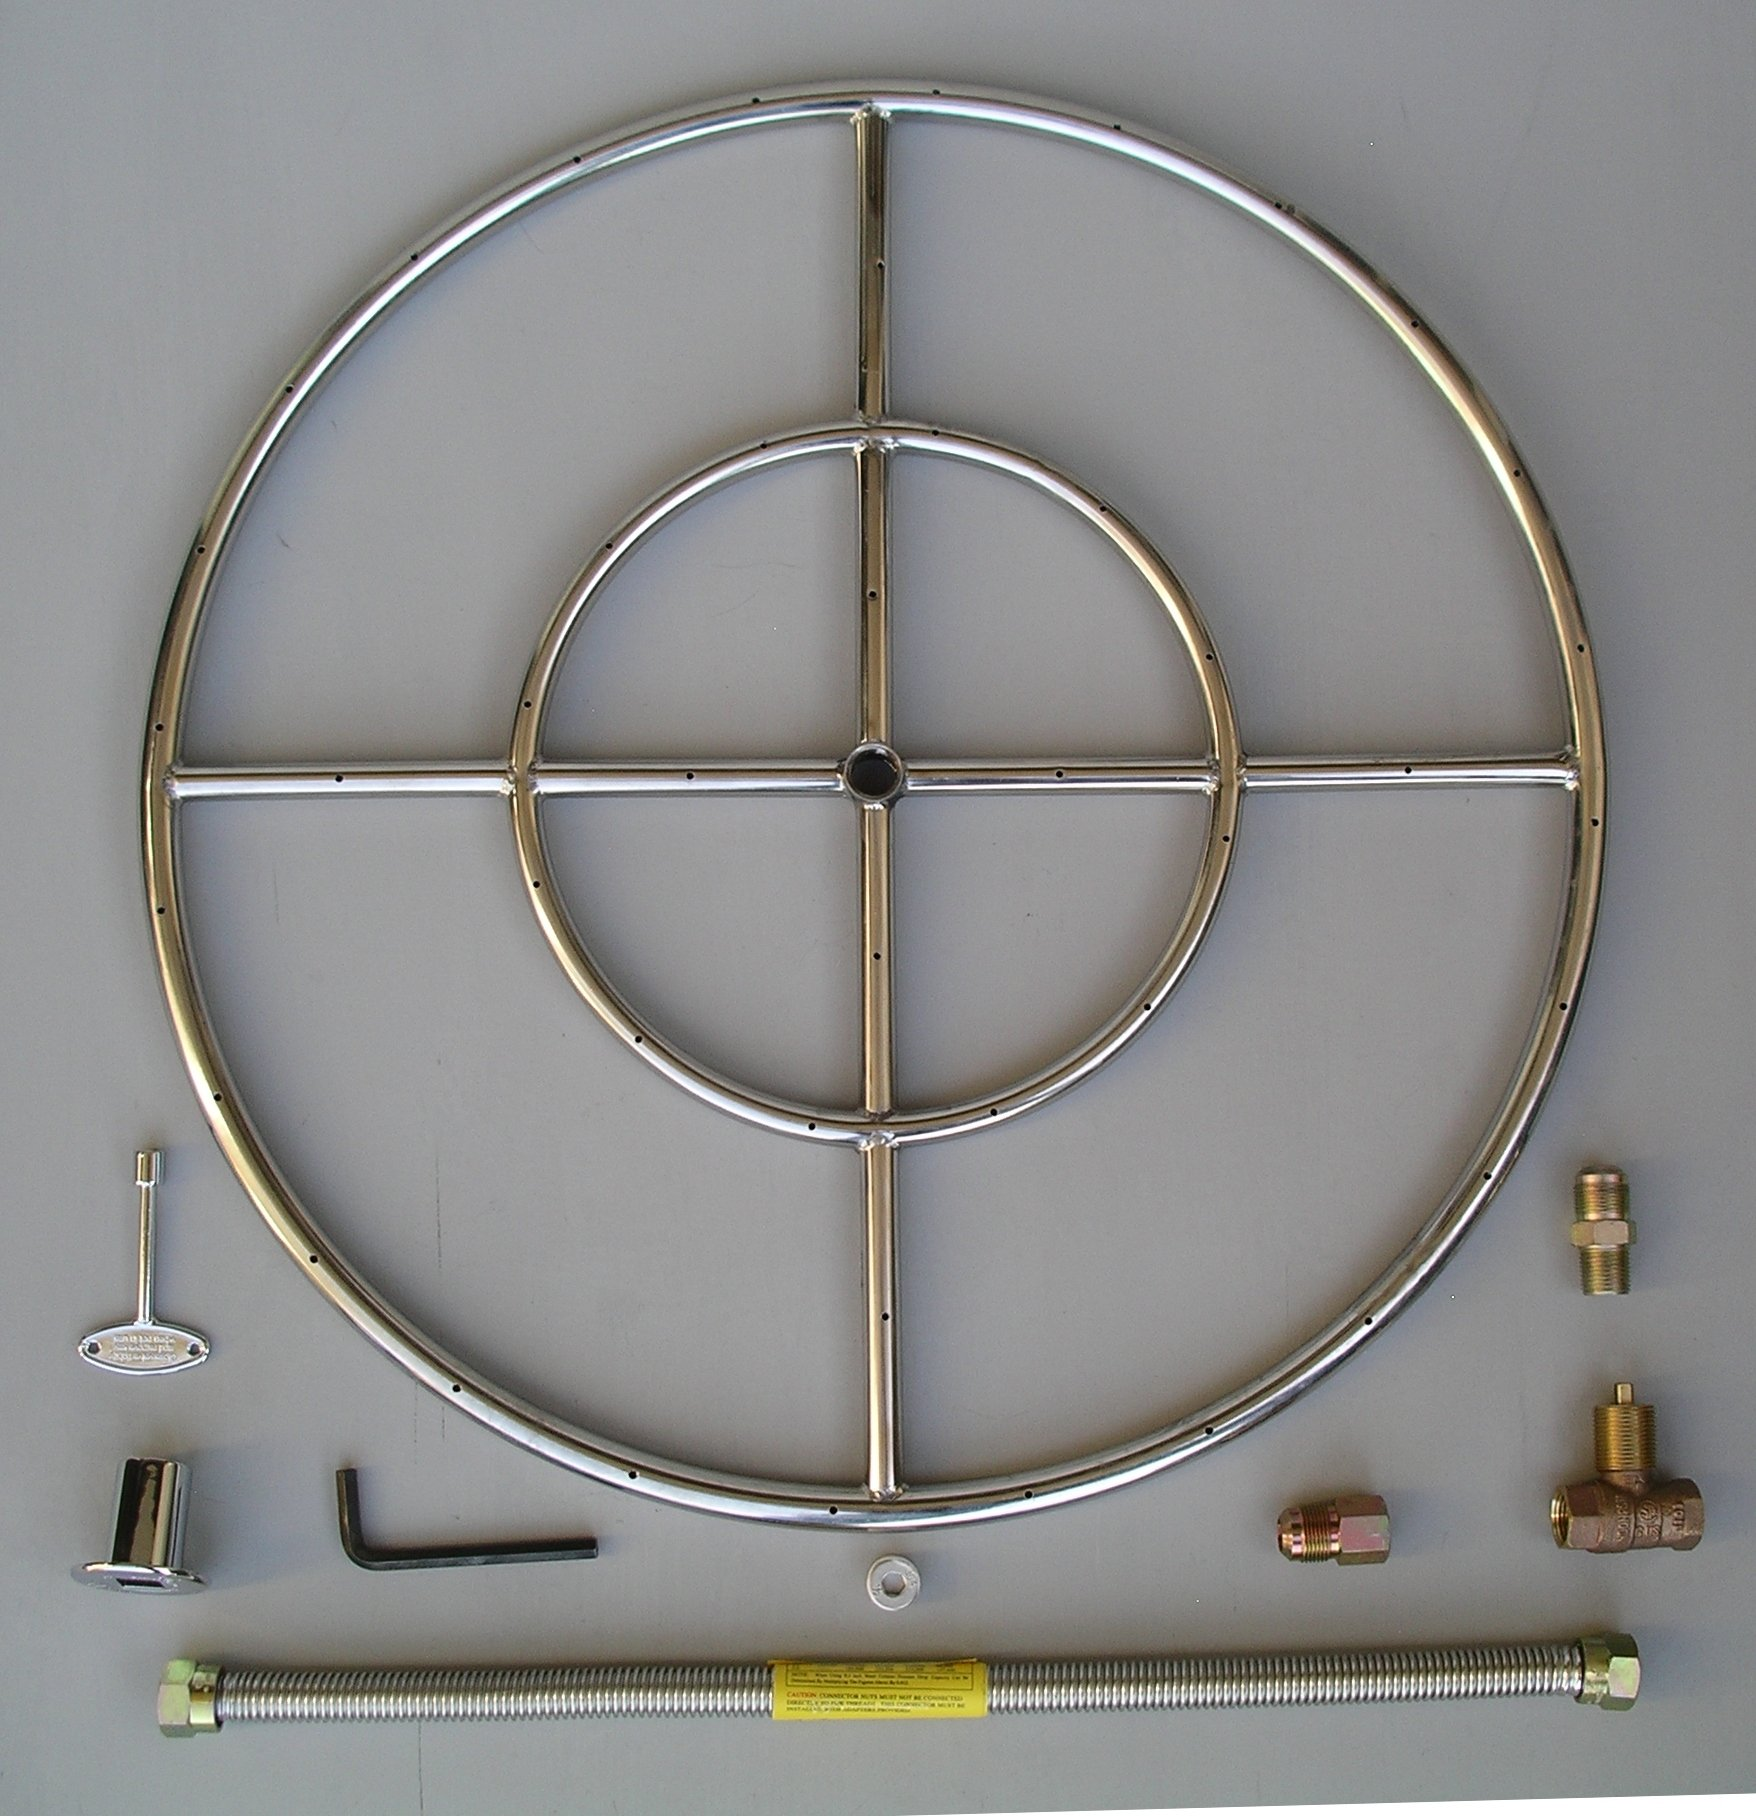 Fire Pit Ring, 24'' Diameter Stainless Steel Burner Ring Kit with Connectors by Fireplace Glass San Diego